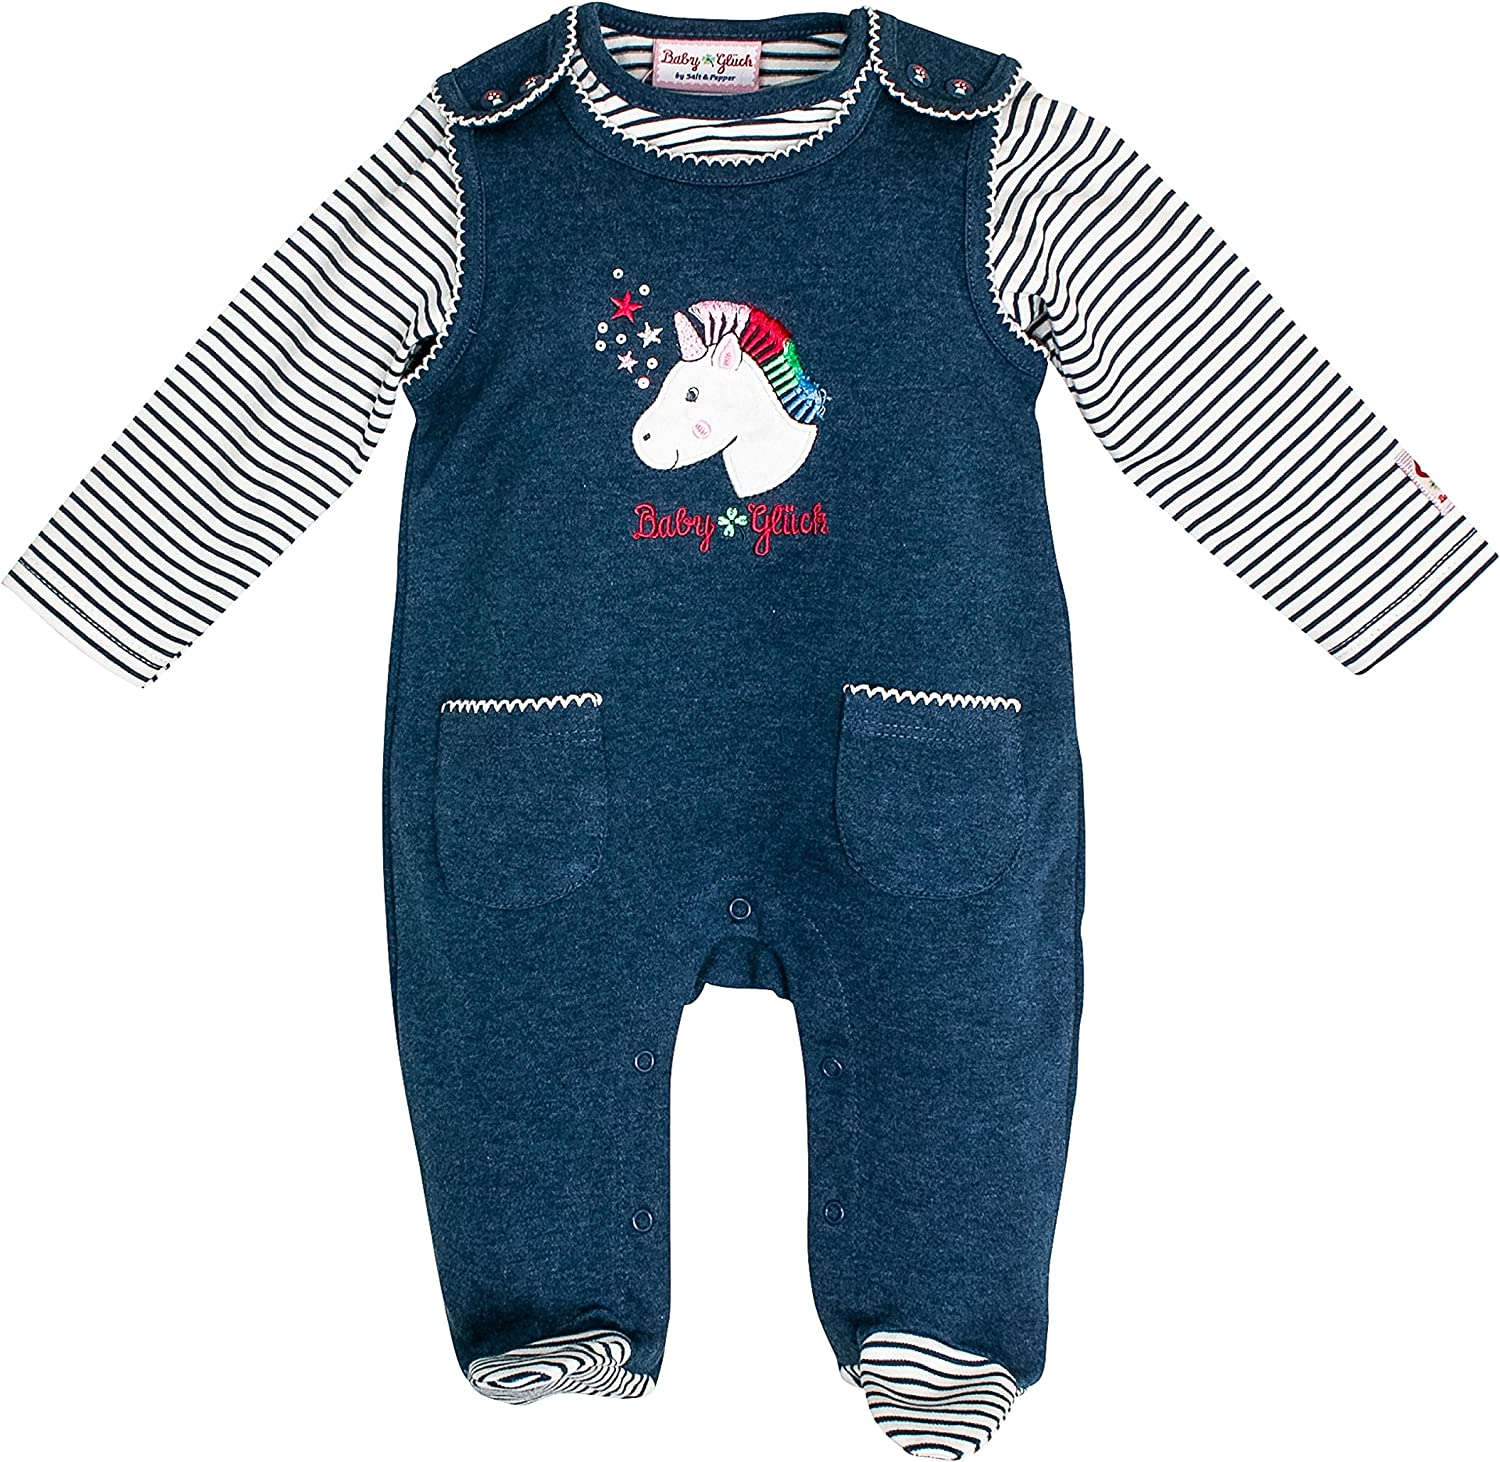 SALT AND PEPPER Baby-M/ädchen Bg Playsuit Uni Einhorn Ocs Strampler